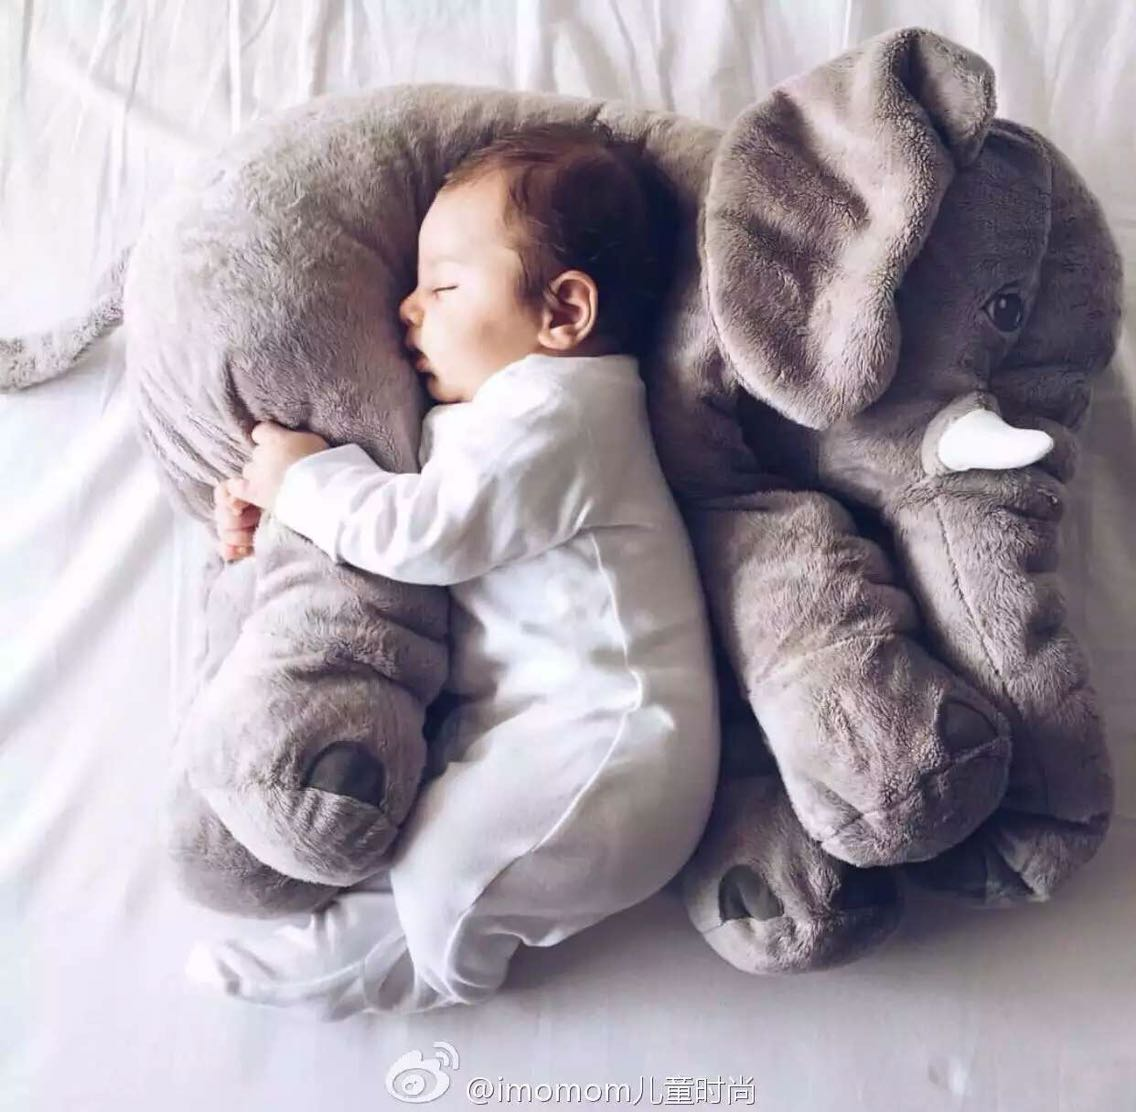 Cartoon Large Plush Elephant Toy Kids Sleeping Back Cushion stuffed Pillow Elephant Doll Baby Doll Birthday Gift for Kids